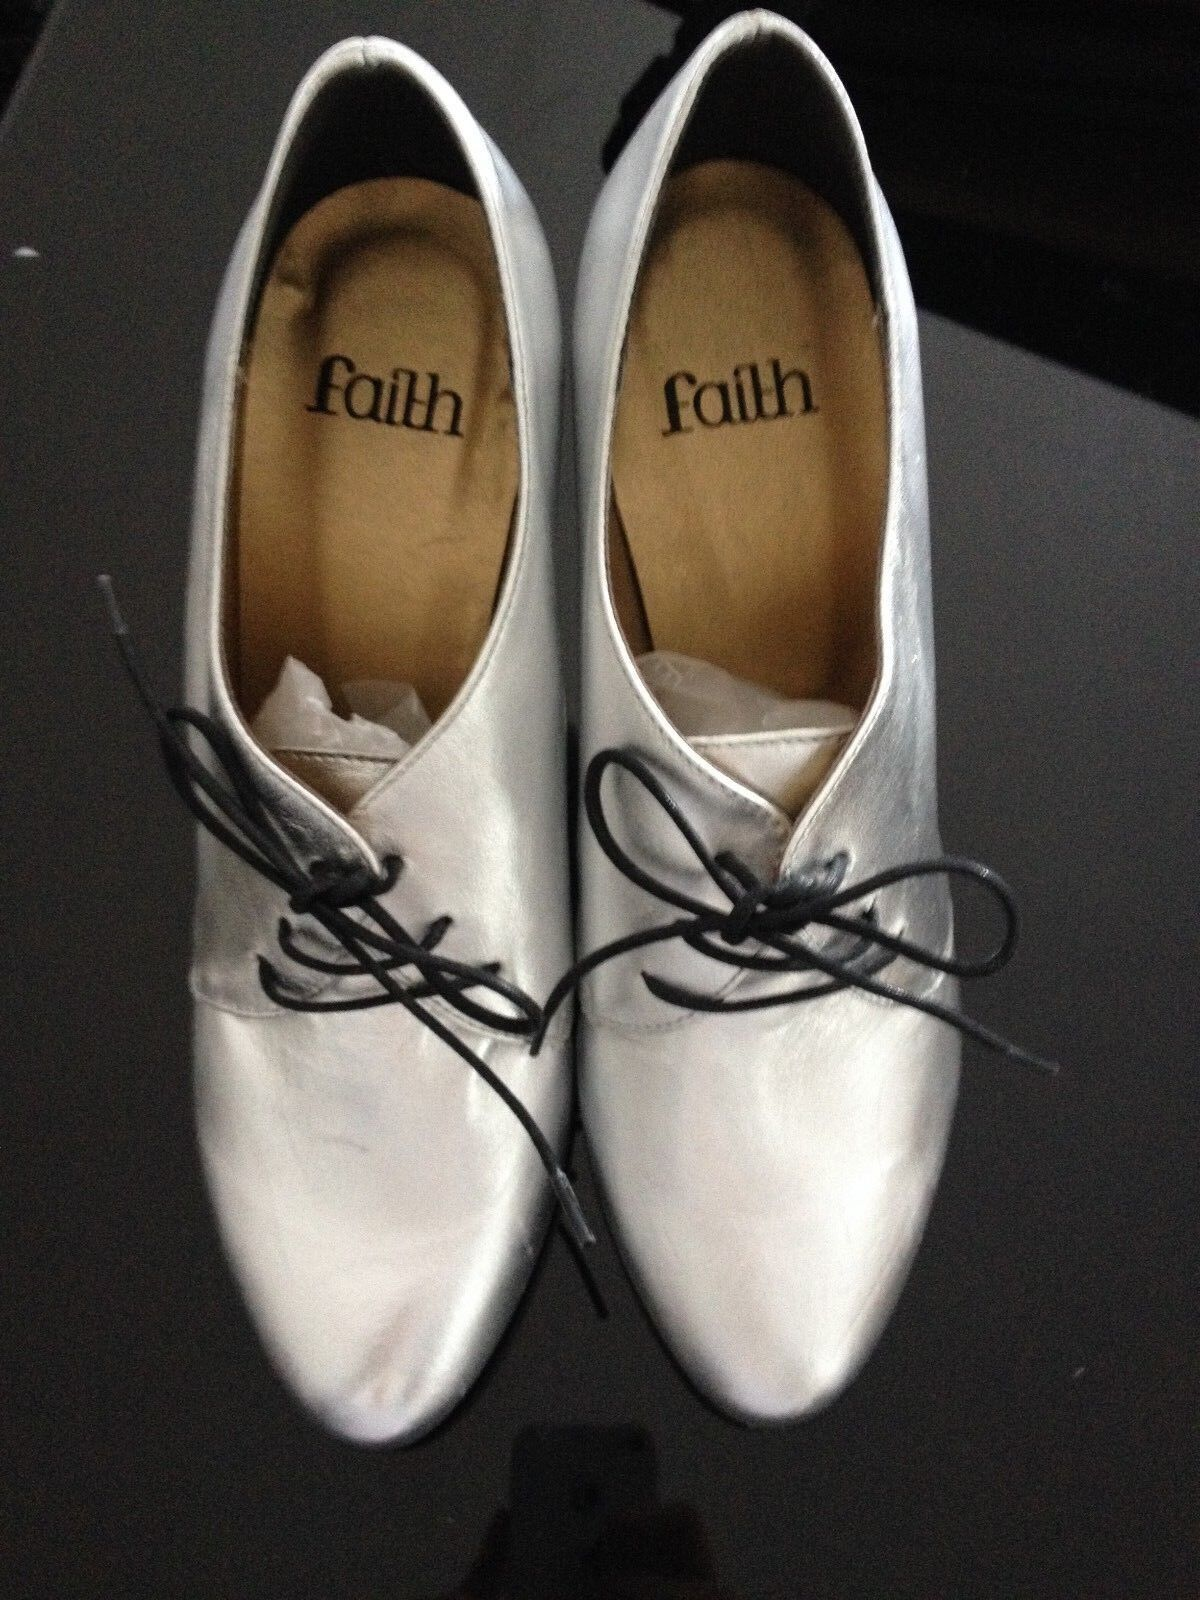 Faith with metallic silver shoe boots with Faith black laces size 7 Brand new 6e28c5